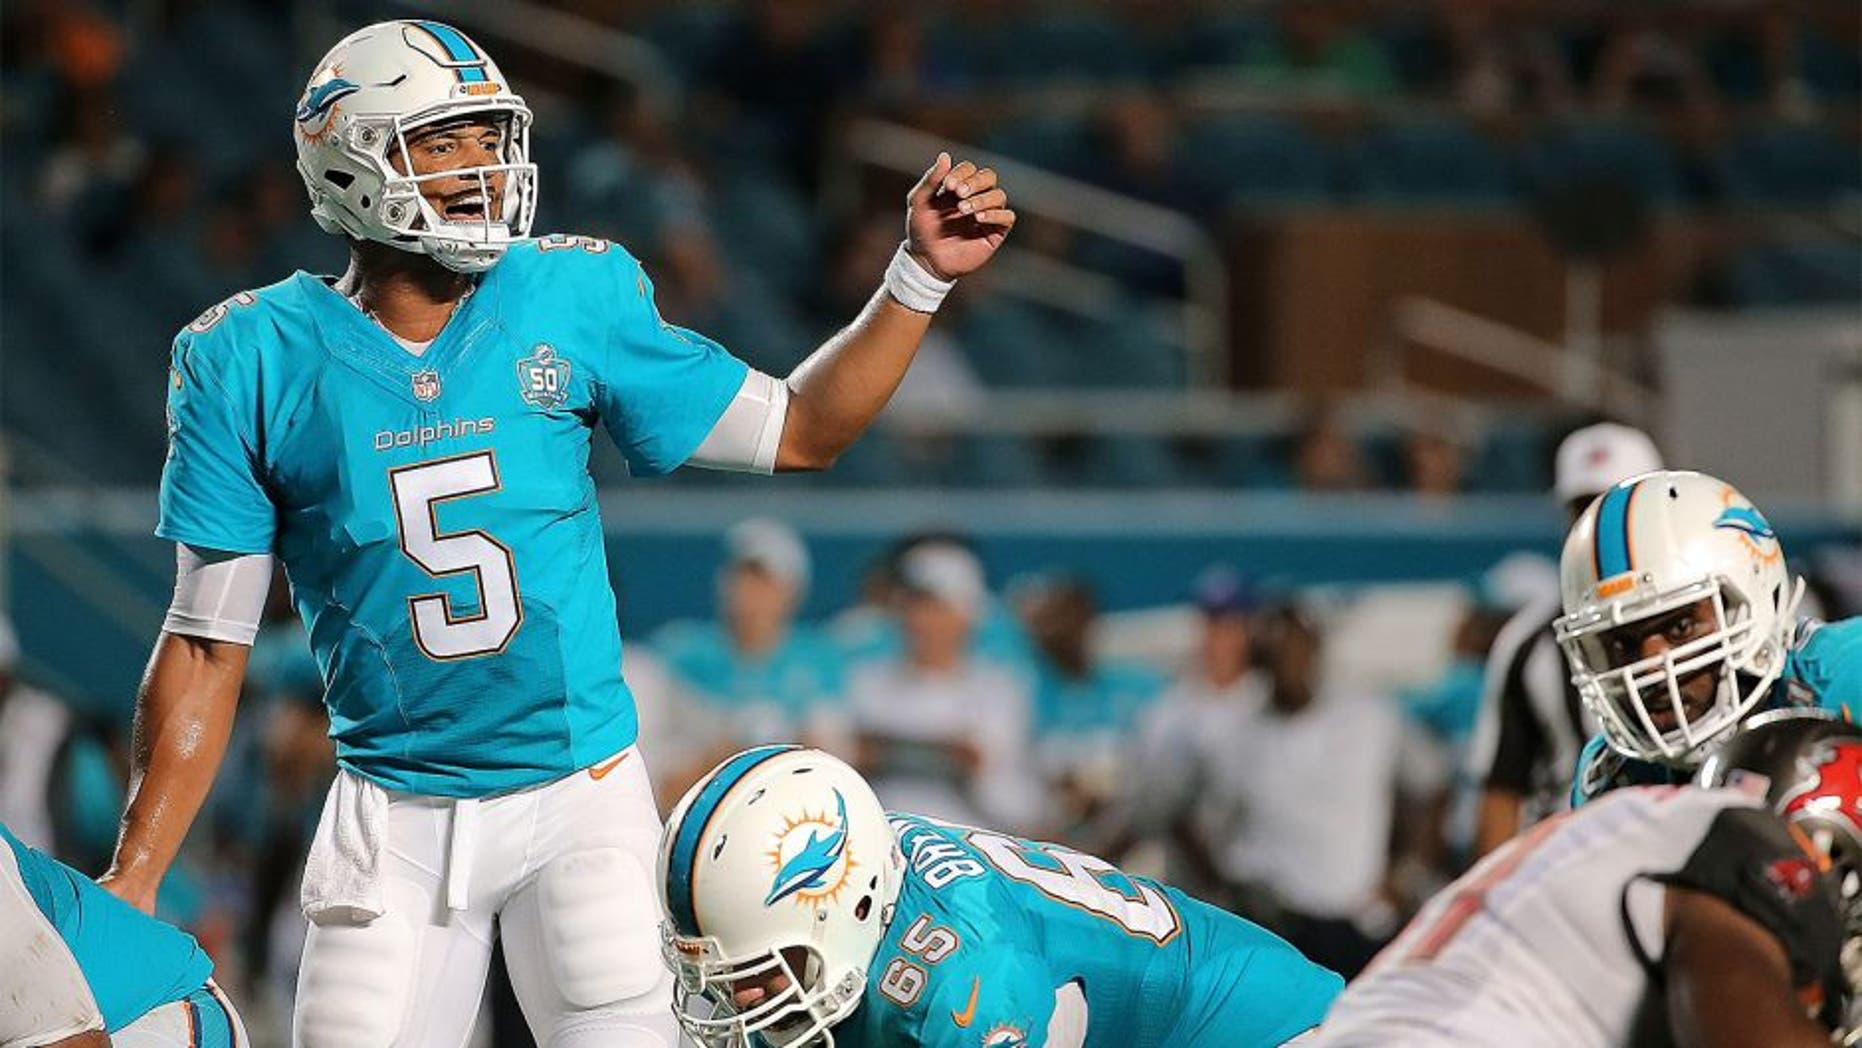 MIAMI GARDENS, FL - SEPTEMBER 03: Josh Freeman #5 of the Miami Dolphins calls a play during a preseason game against the Tampa Bay Buccaneers at Sun Life Stadium on September 3, 2015 in Miami Gardens, Florida. (Photo by Mike Ehrmann/Getty Images)